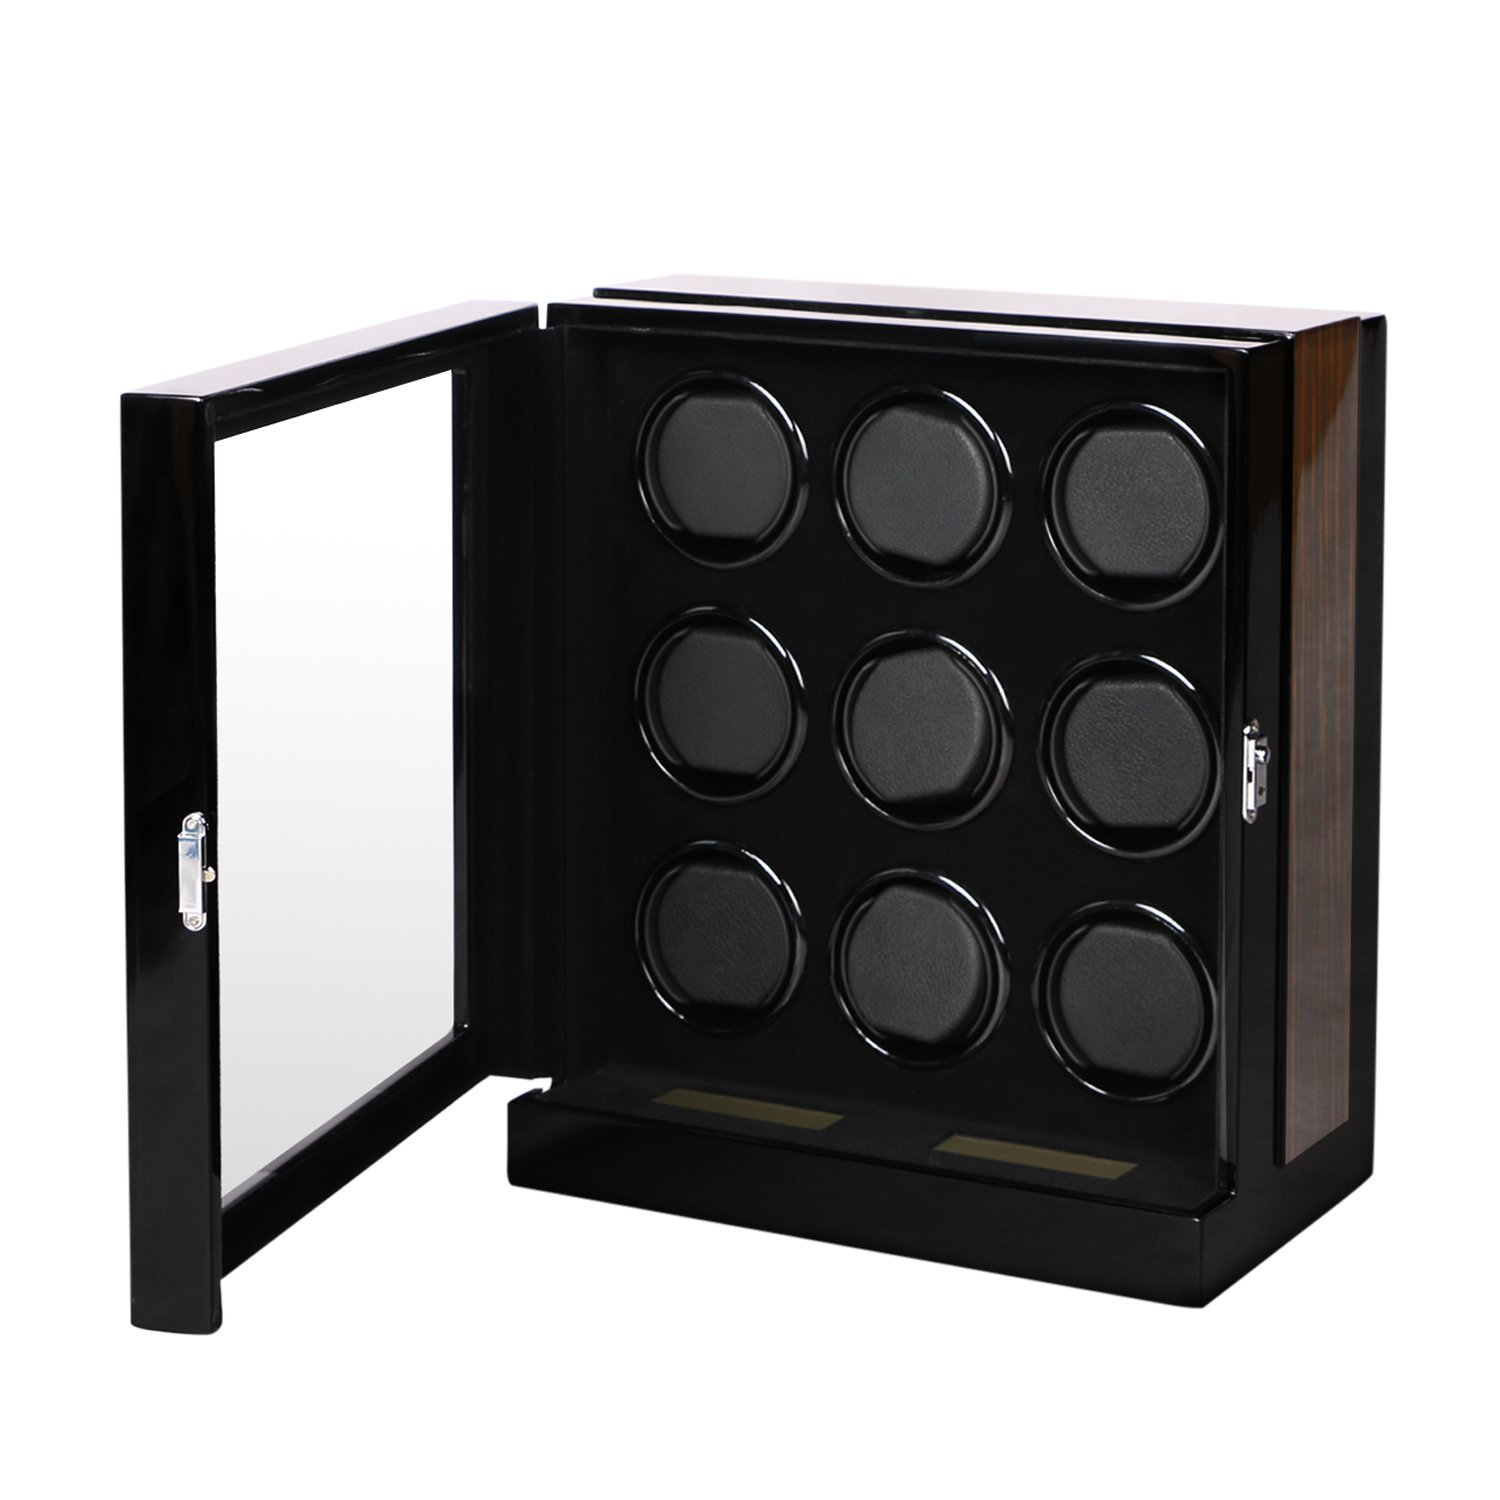 「ON SALE 」OLYMBROS Wooden Automatic Watch Winder Storage Box with LCD Touch Screen for 9 Watches